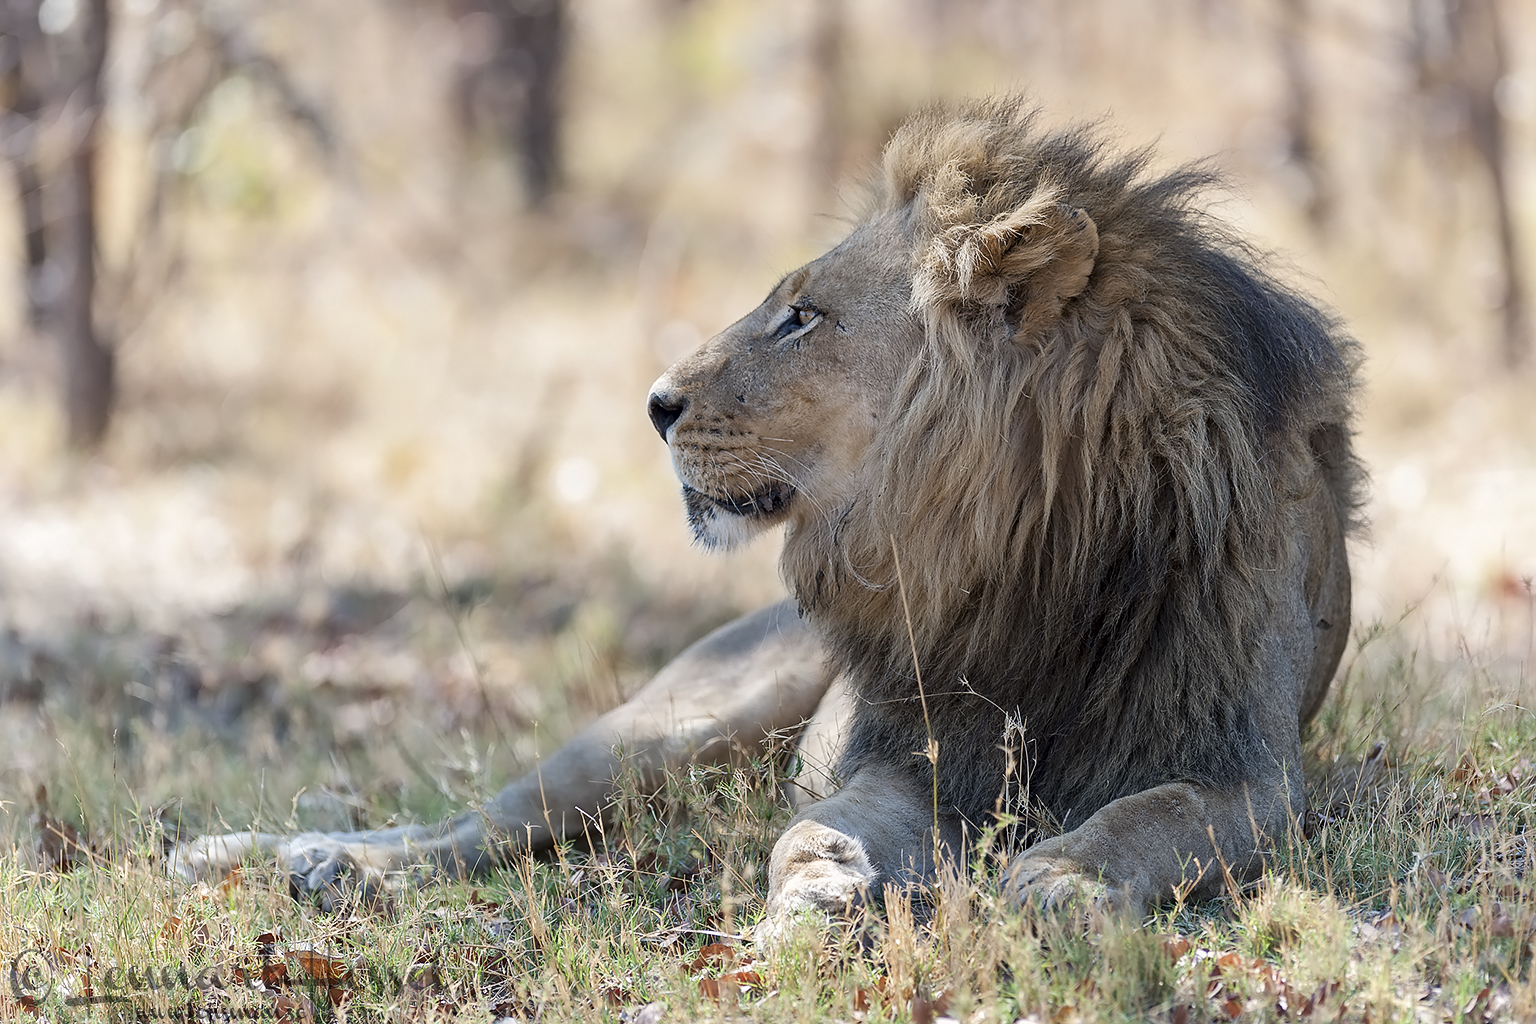 Lion gazing in Moremi Game Reserve, Botswana - animal